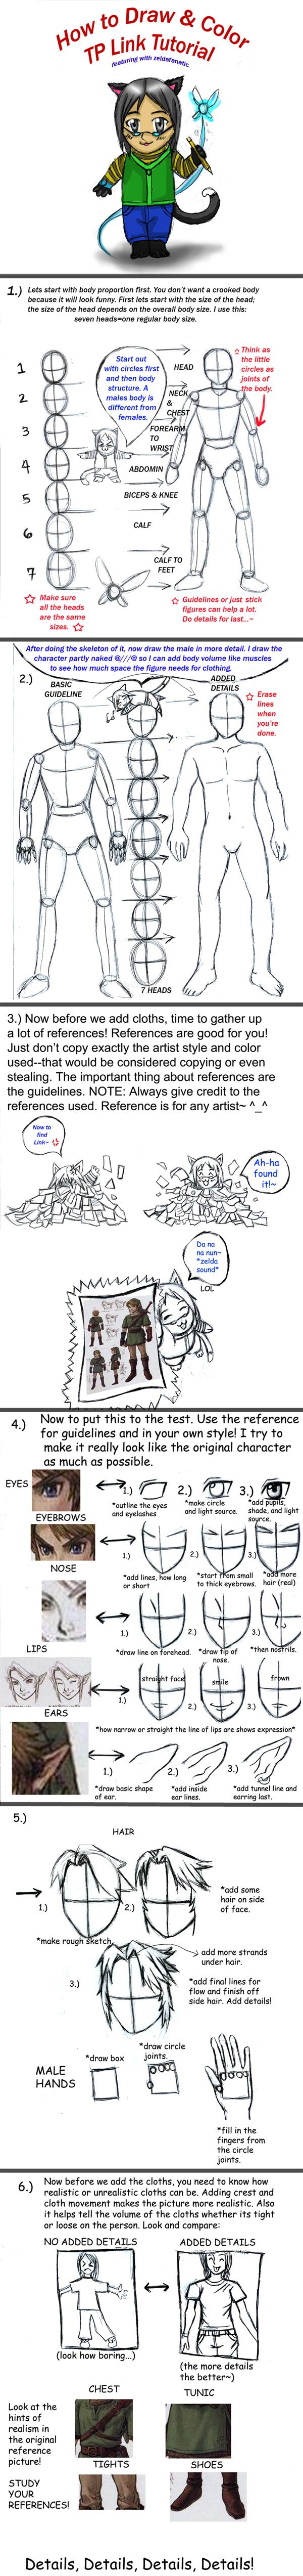 How to Draw TP Link Tutorial by Rinkuchan27